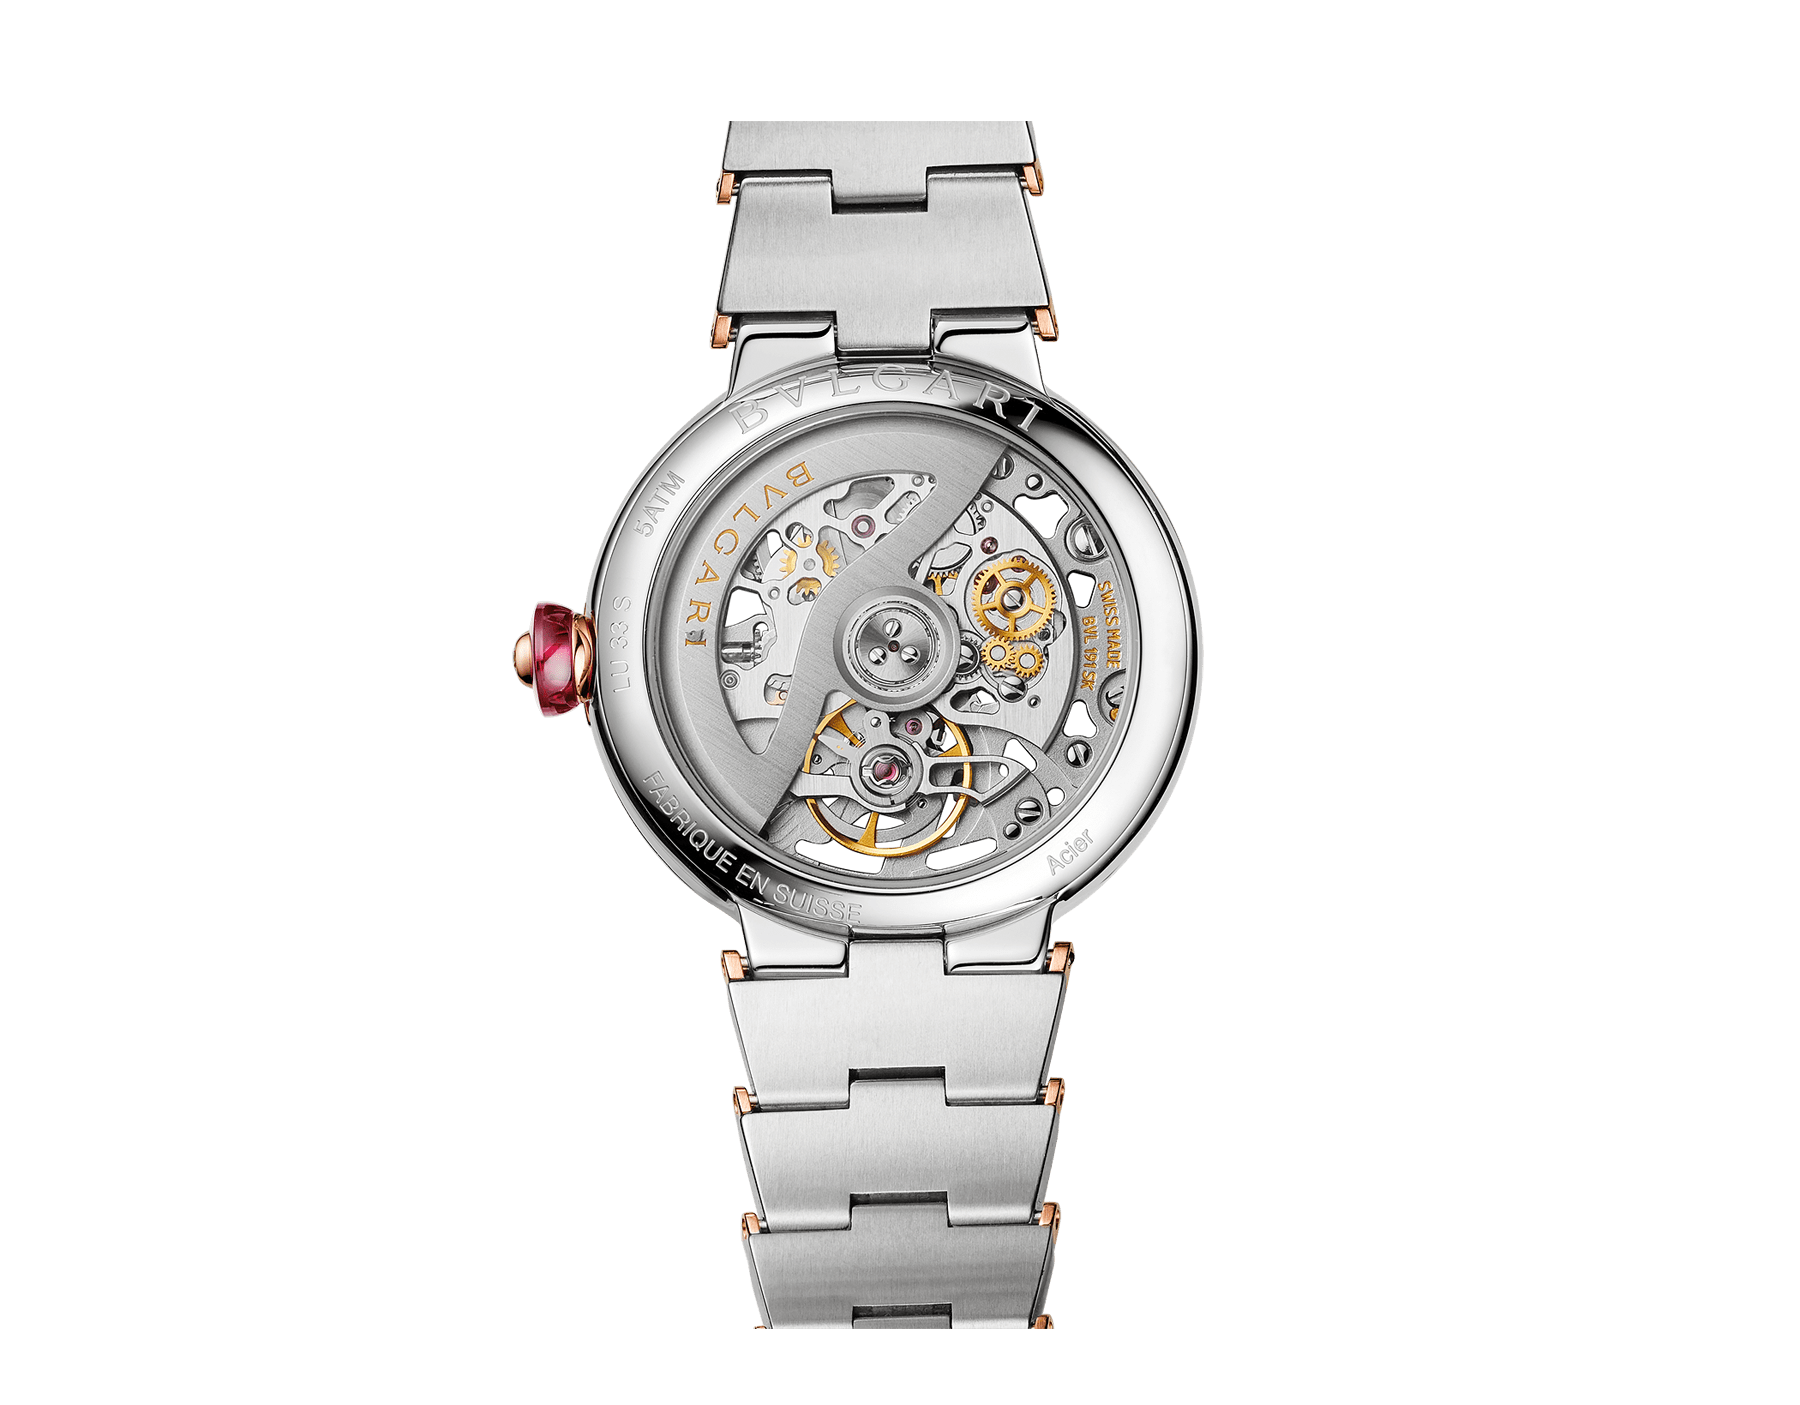 LVCEA Skeleton watch with mechanical manufacture movement, automatic winding, stainless steel and 18 kt rose gold case and bracelet, and openwork BVLGARI logo dial 102878 image 3